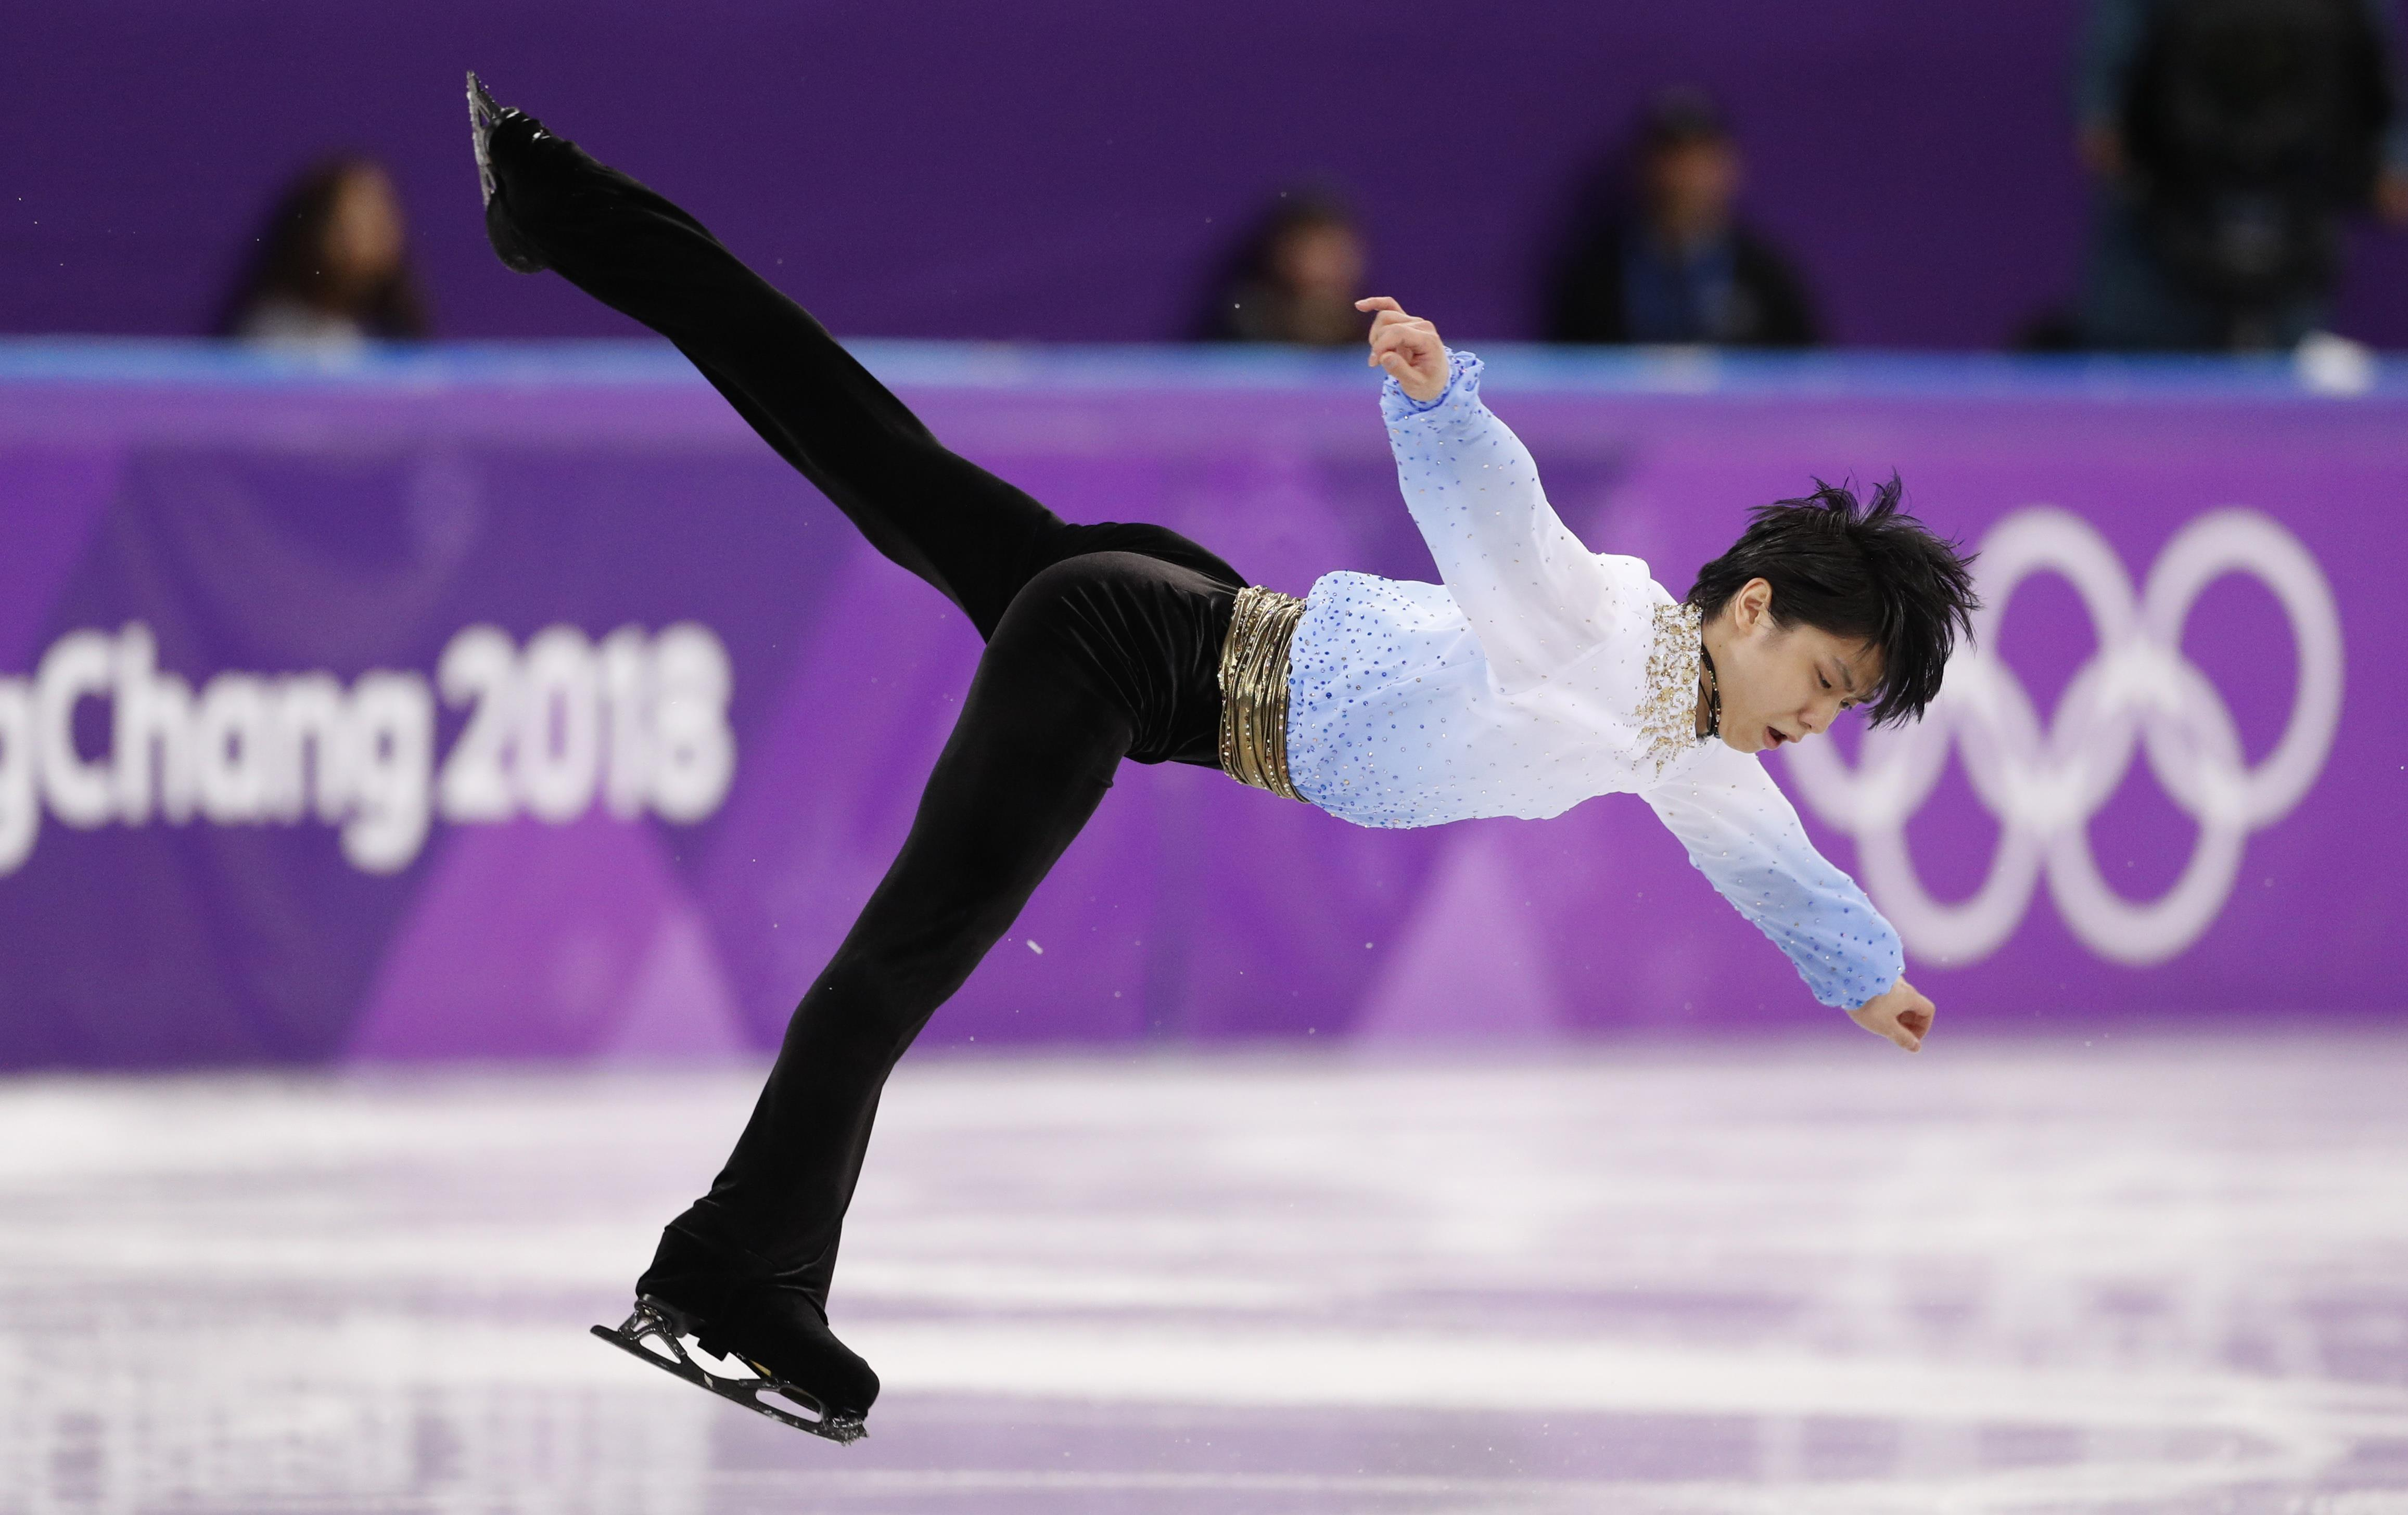 Other Sport: Figure Skating - Japan's Hanyu eclipses